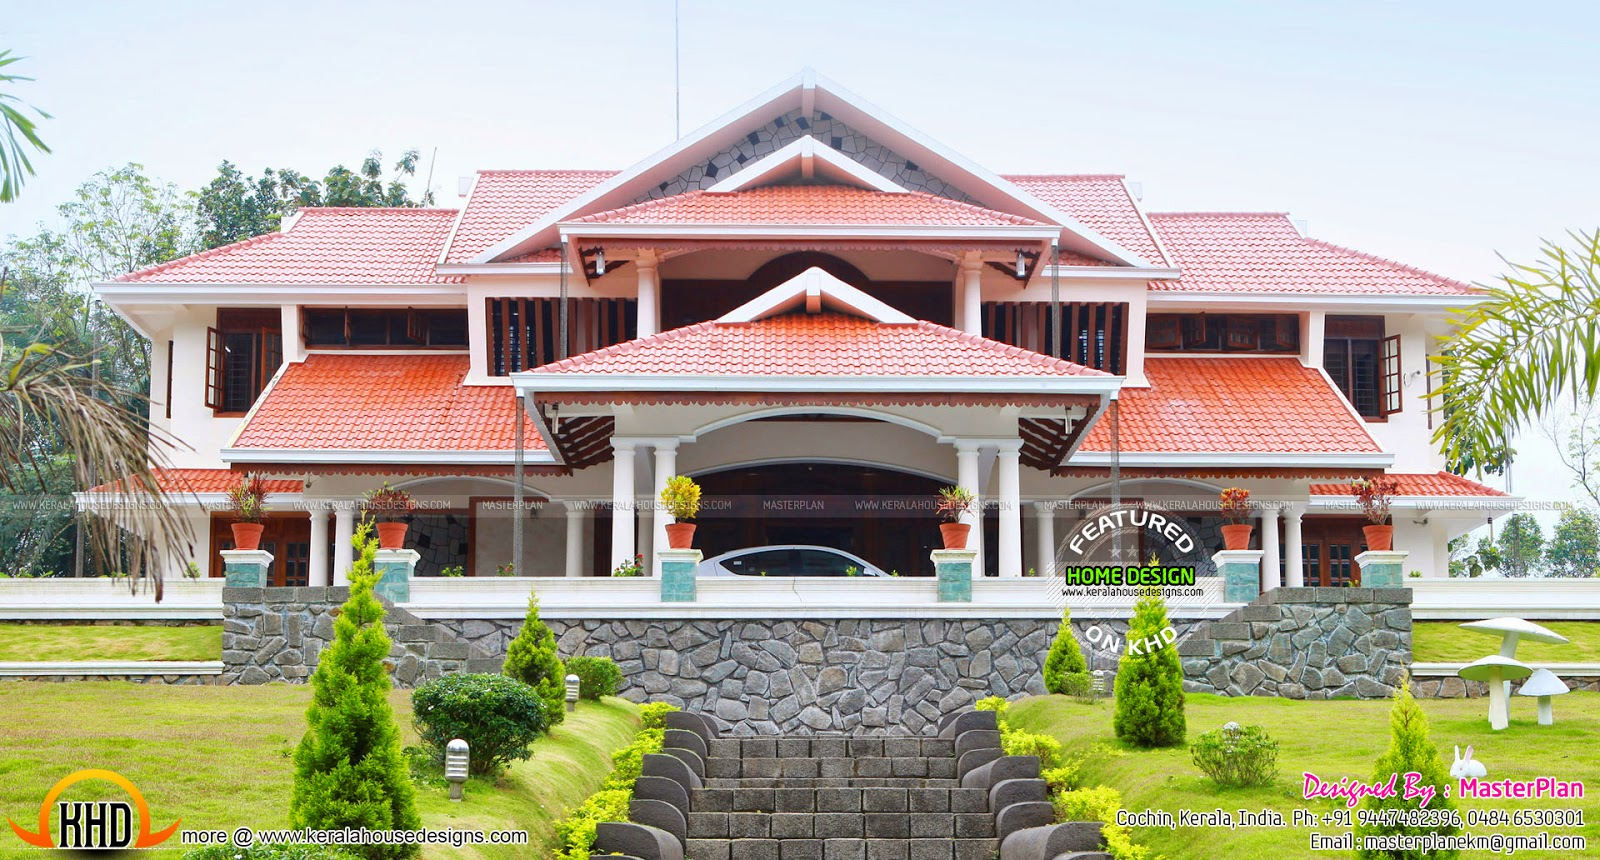 work finished luxury home kerala home design and floor plans